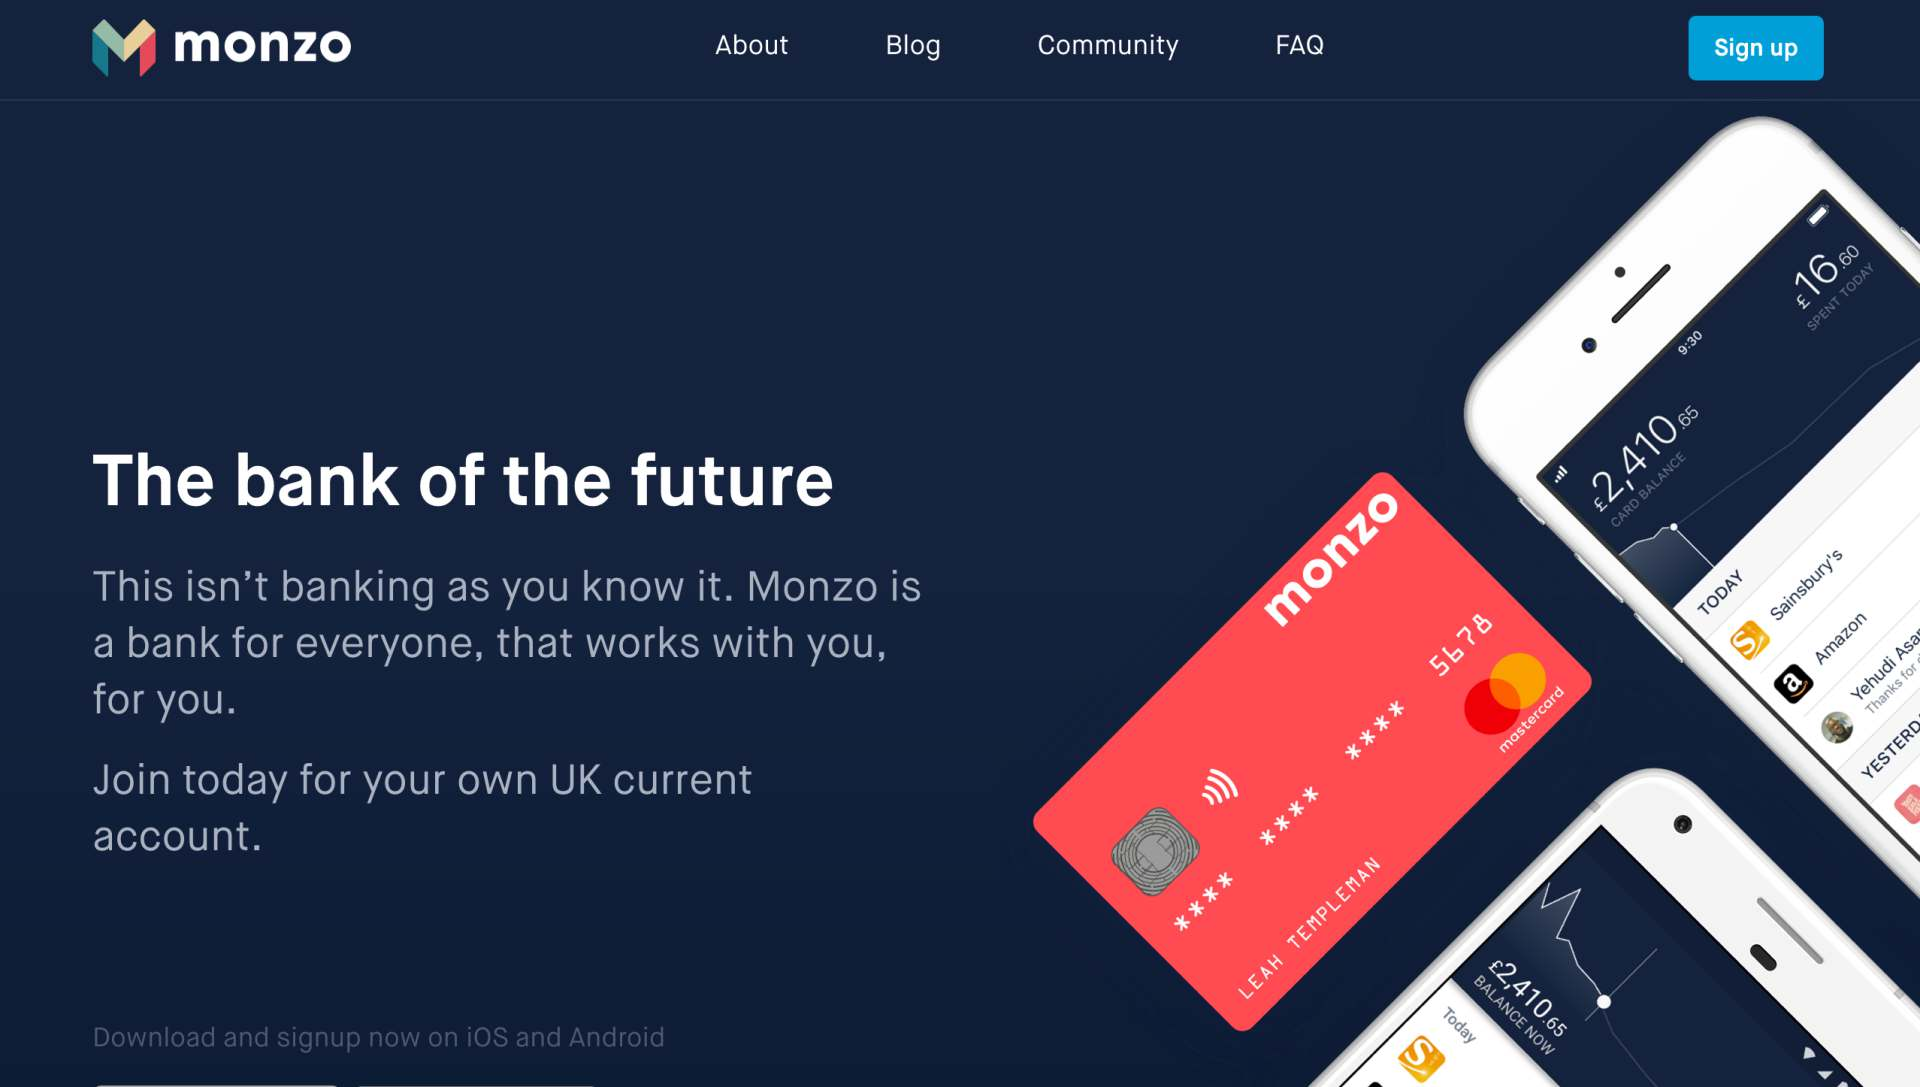 Monzo digitalis bank